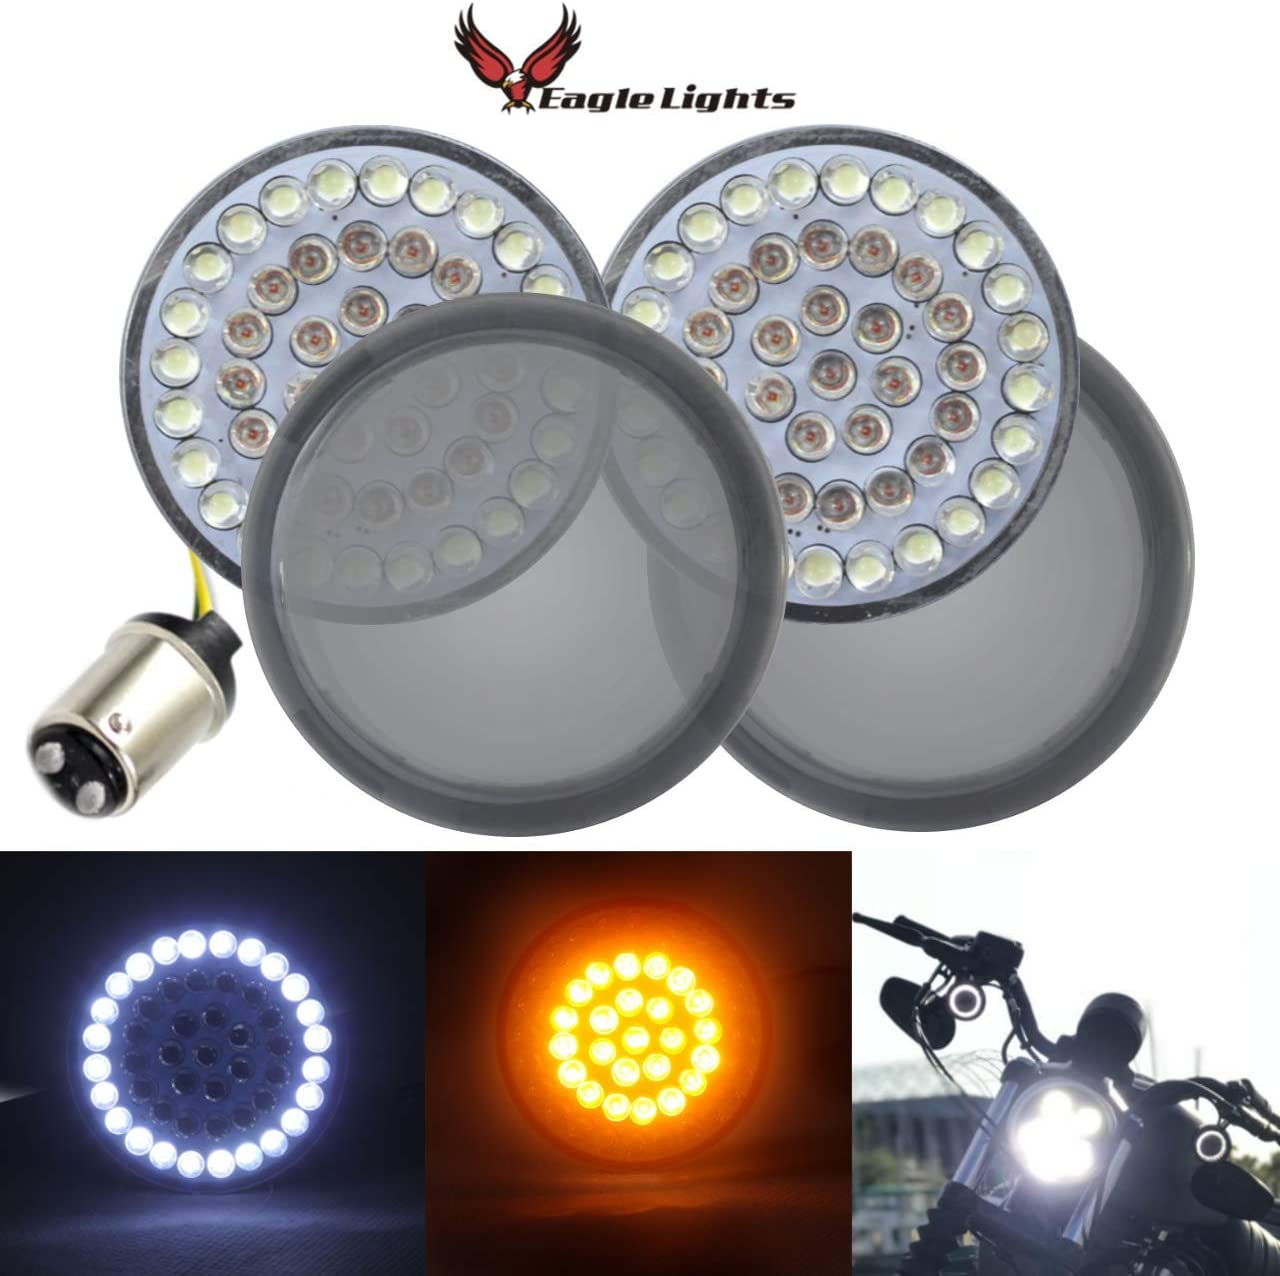 2 Inch Bullet Running Light with Smoked Lens Cover for Harley Sporster 1200 Street Glide Dyna DTR2017 1157 Front LED Turn Signal Lights Road King Softail 2020